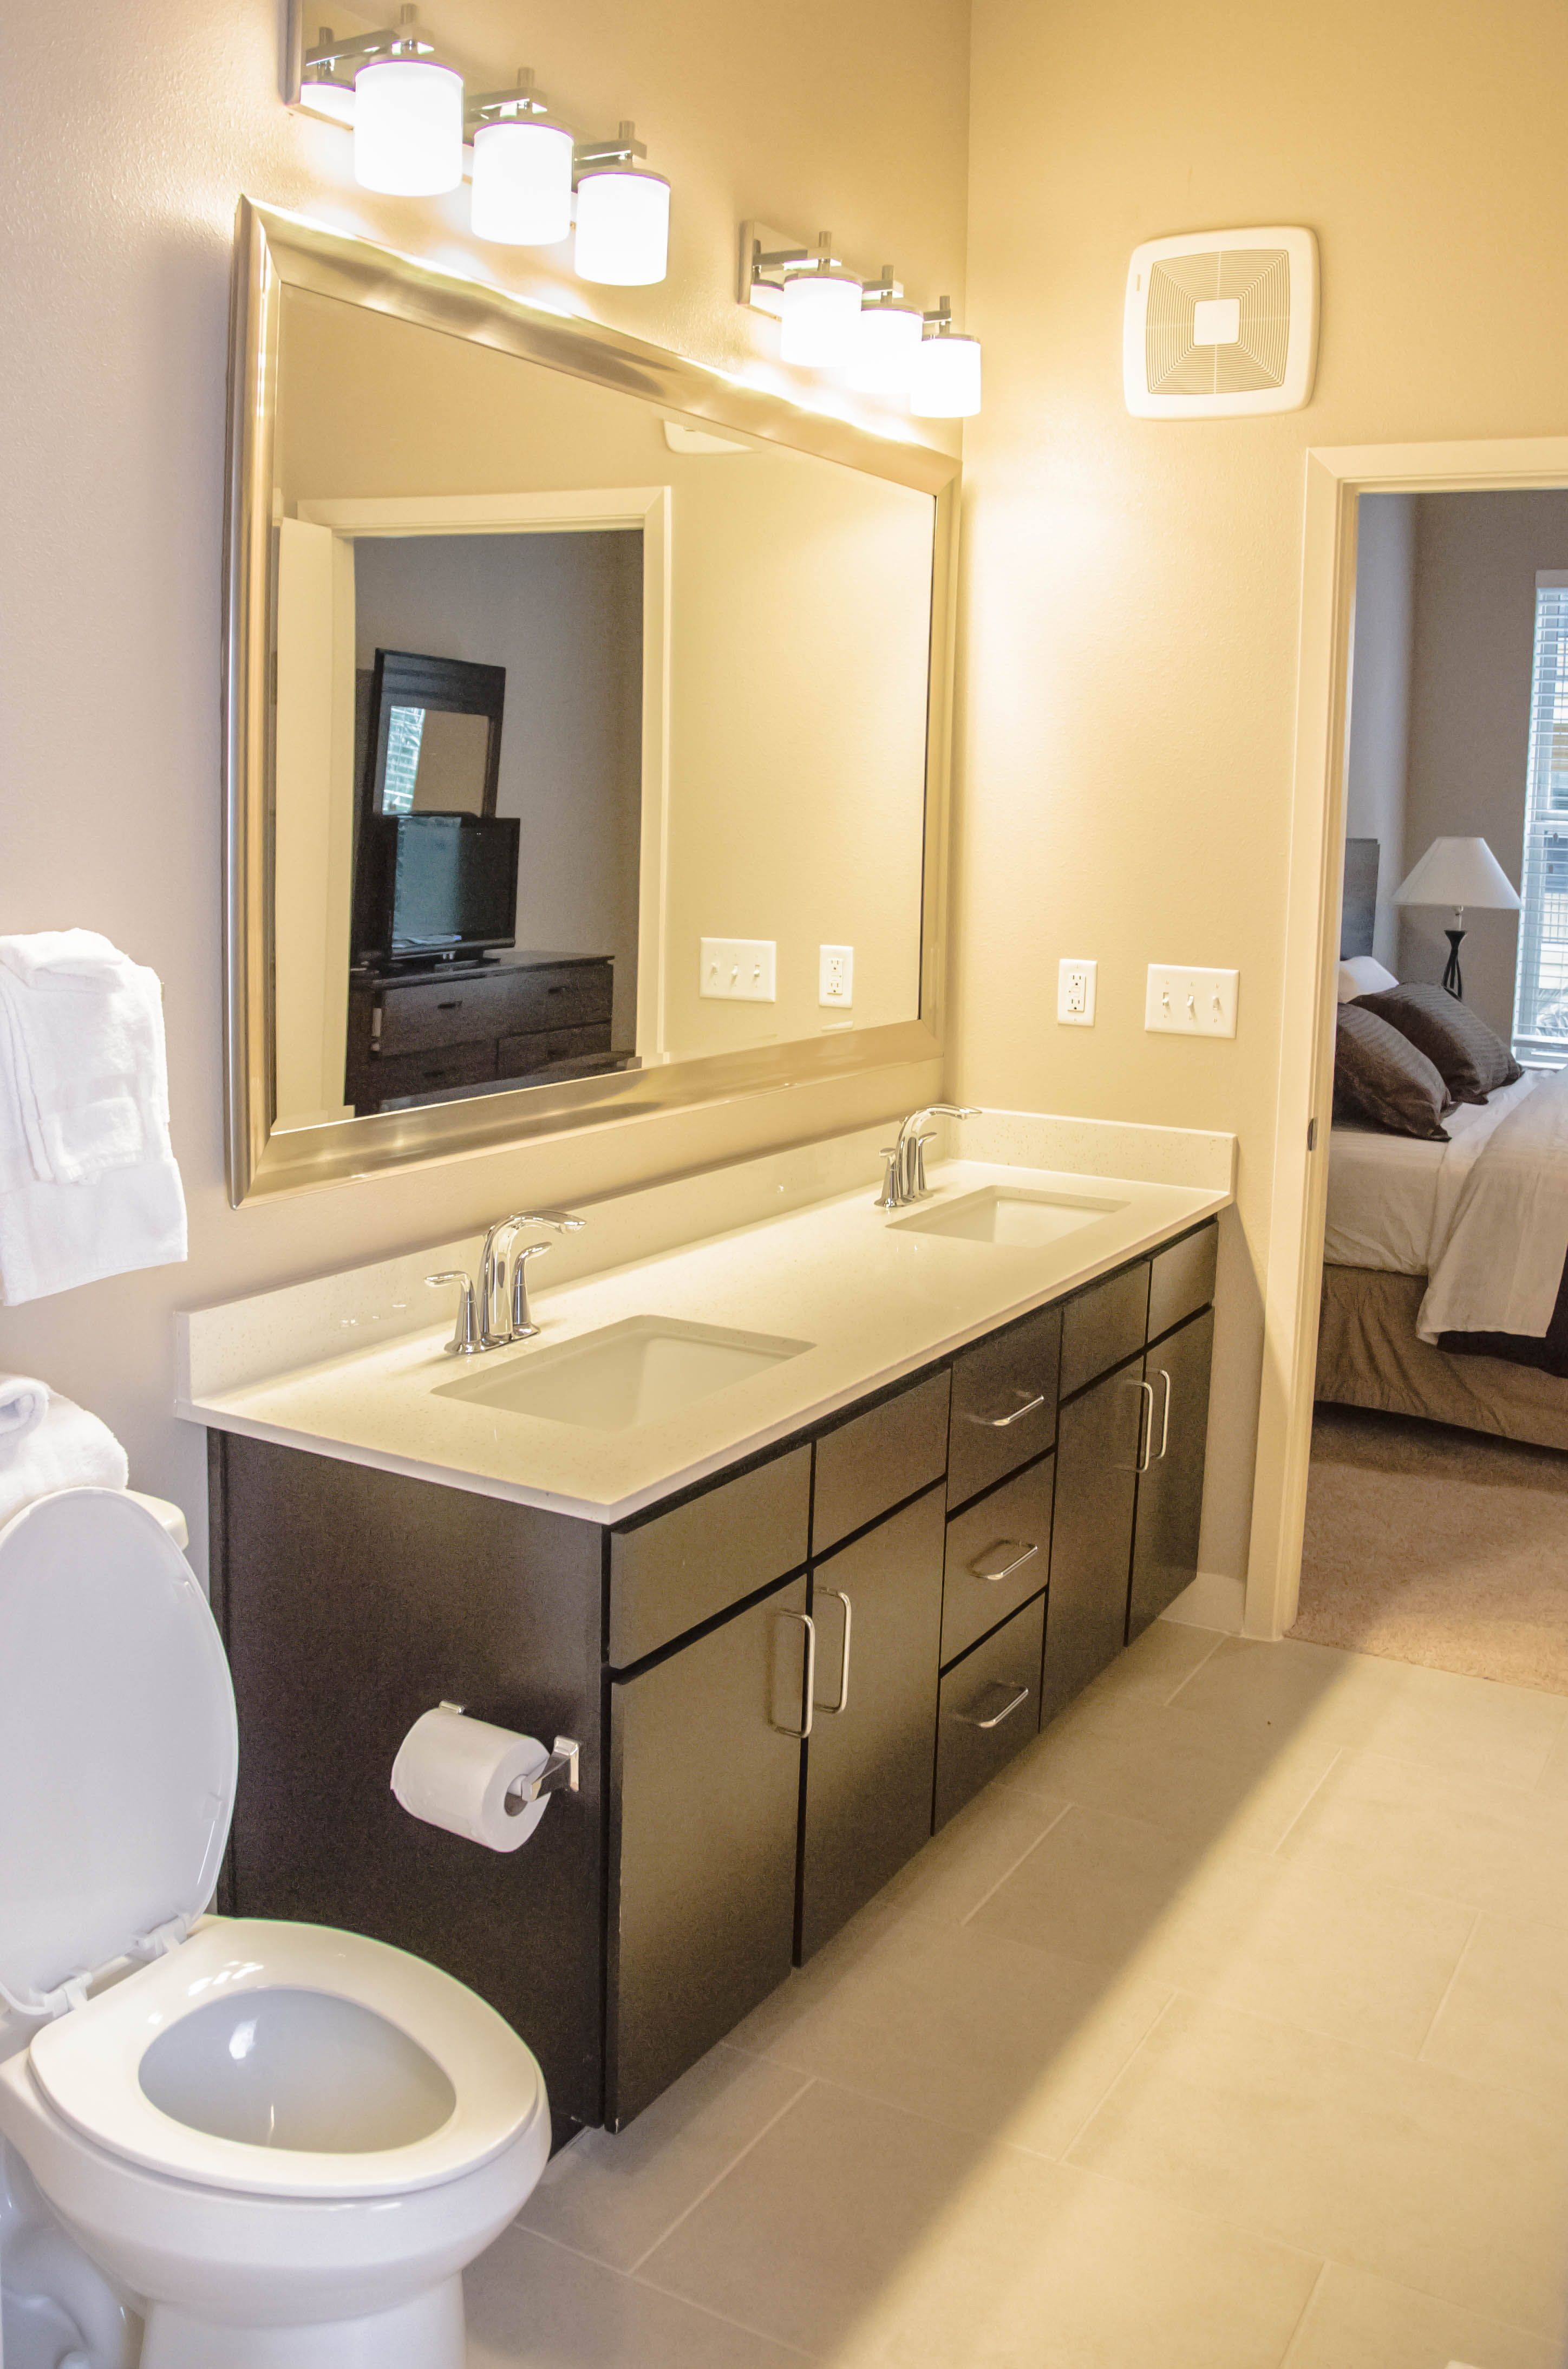 Elan Medical Center Houston Furnished Apartments Now Available!    Comfortable Home Furnished Apartments Houston